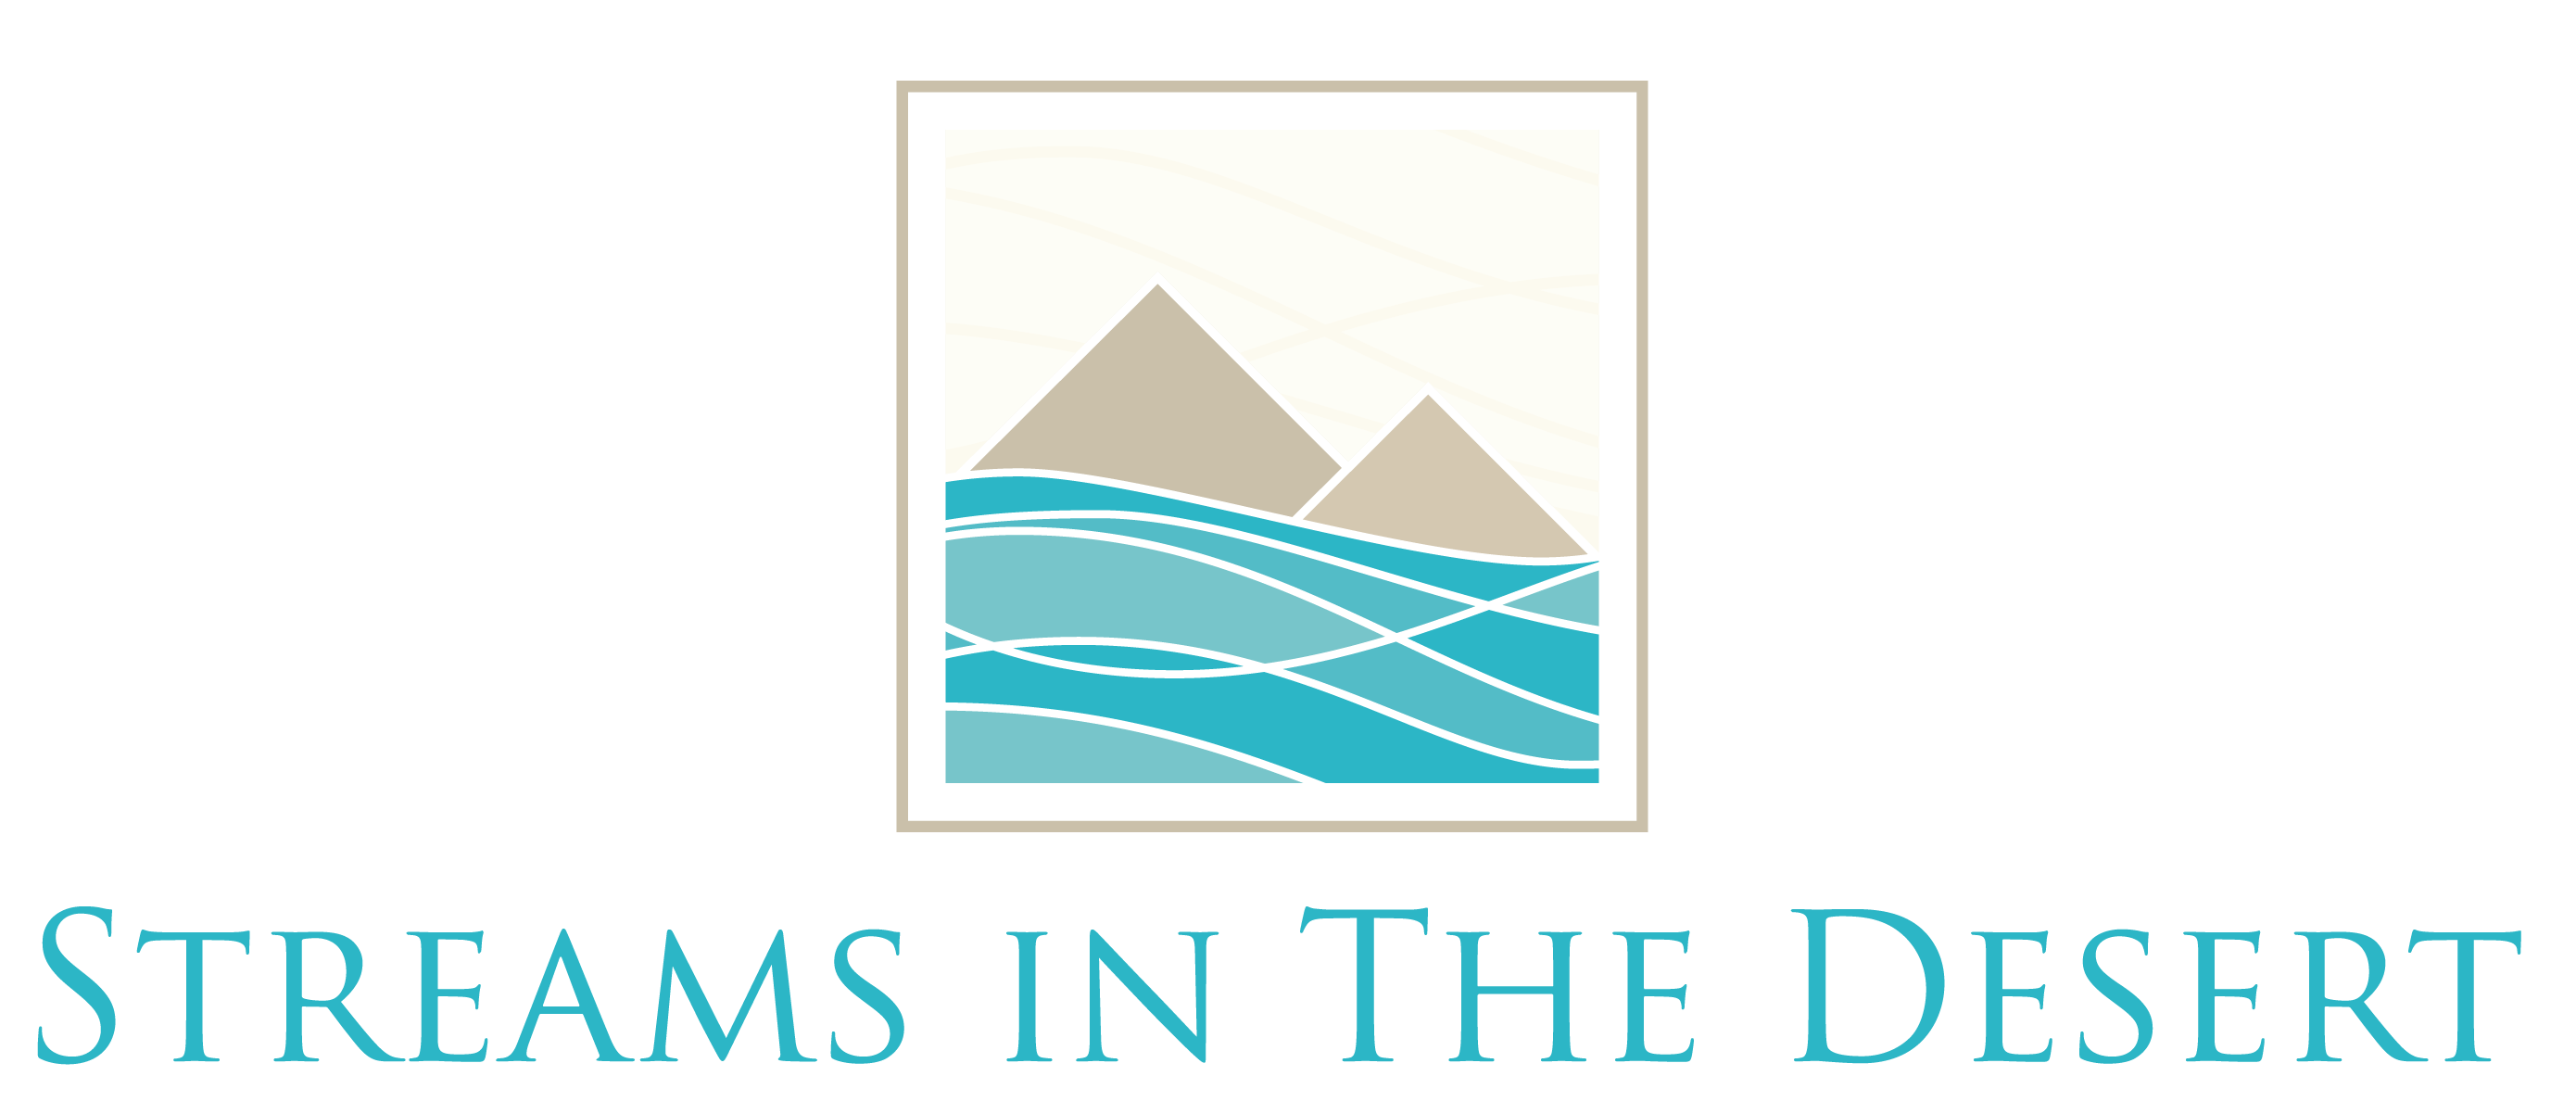 Streams In The Desert logo